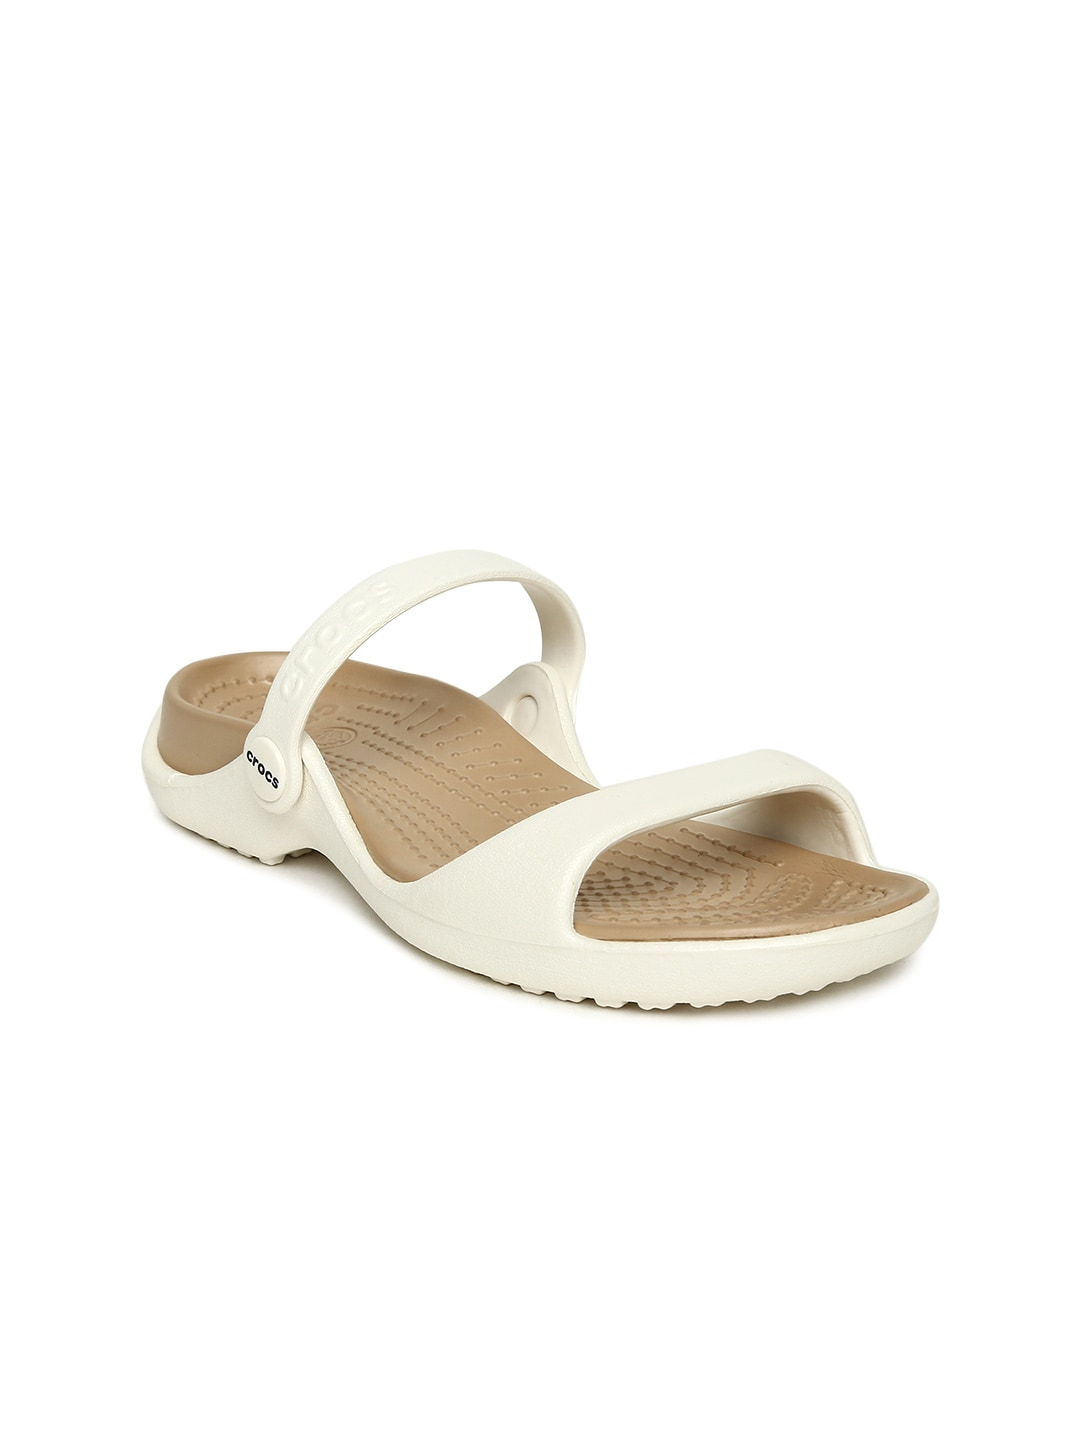 eacc07fdc1d6ef Ladies Sandals - Buy Women Sandals Online in India - Myntra